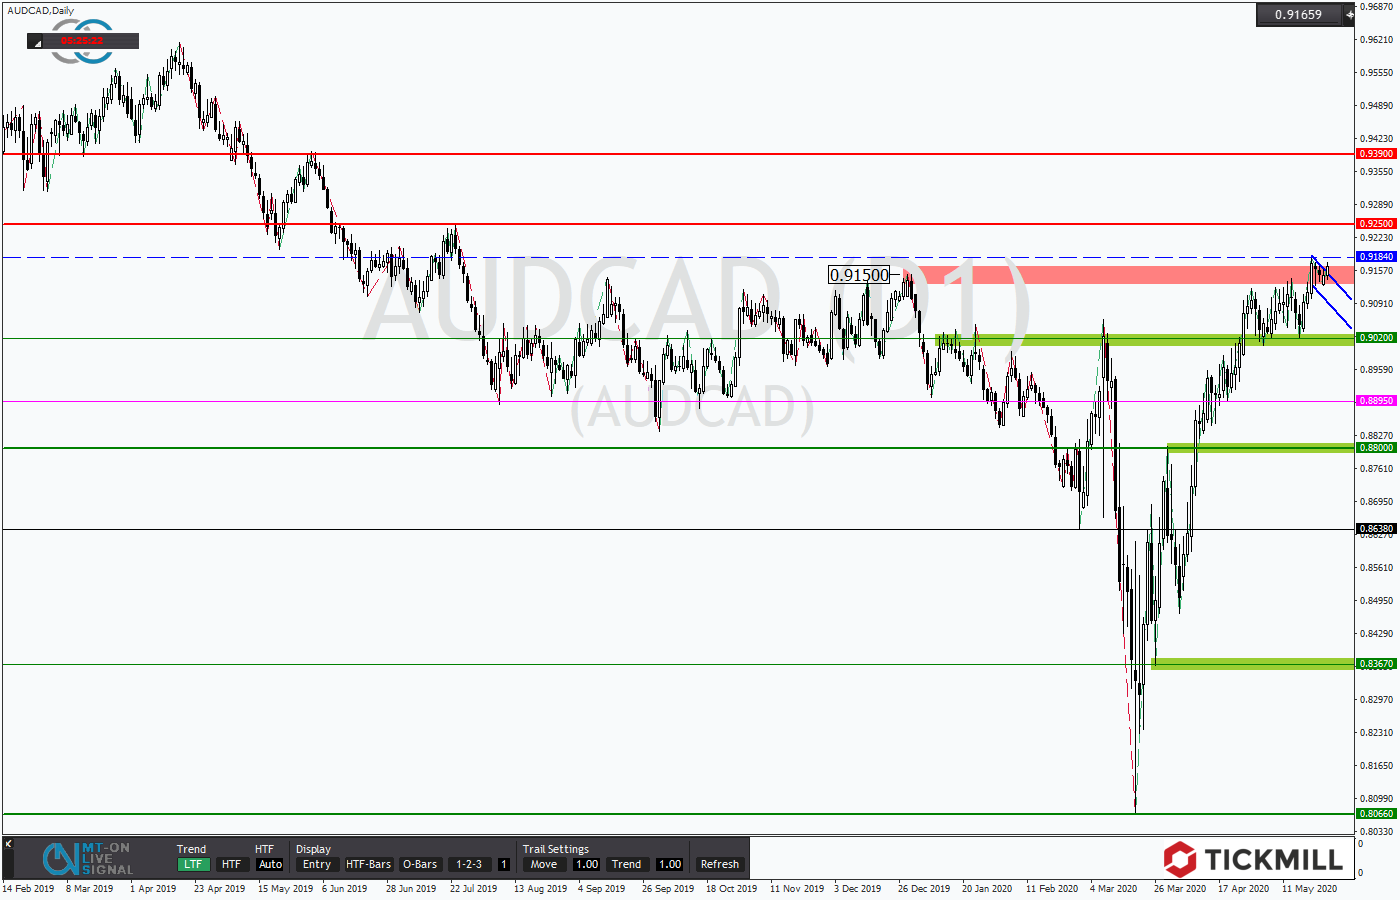 Tickmill-Analyse: AUDCAD am Widerstand